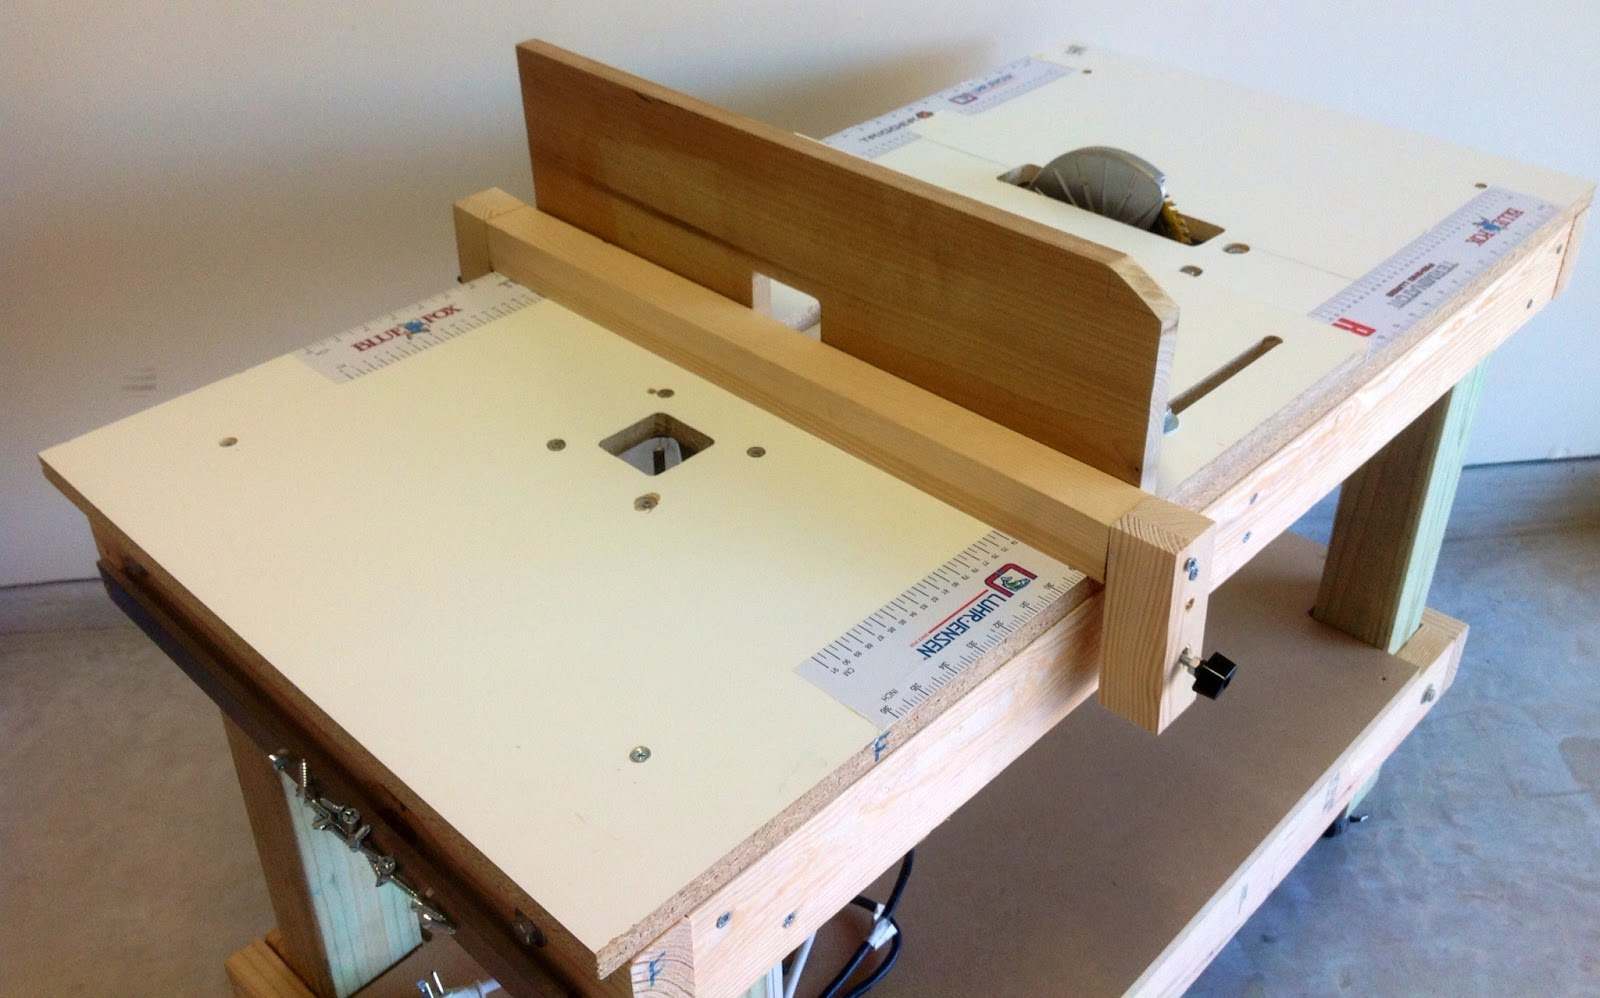 ... DIY Portable 3-in-1 Workbench / Table Saw / Router Table Combo